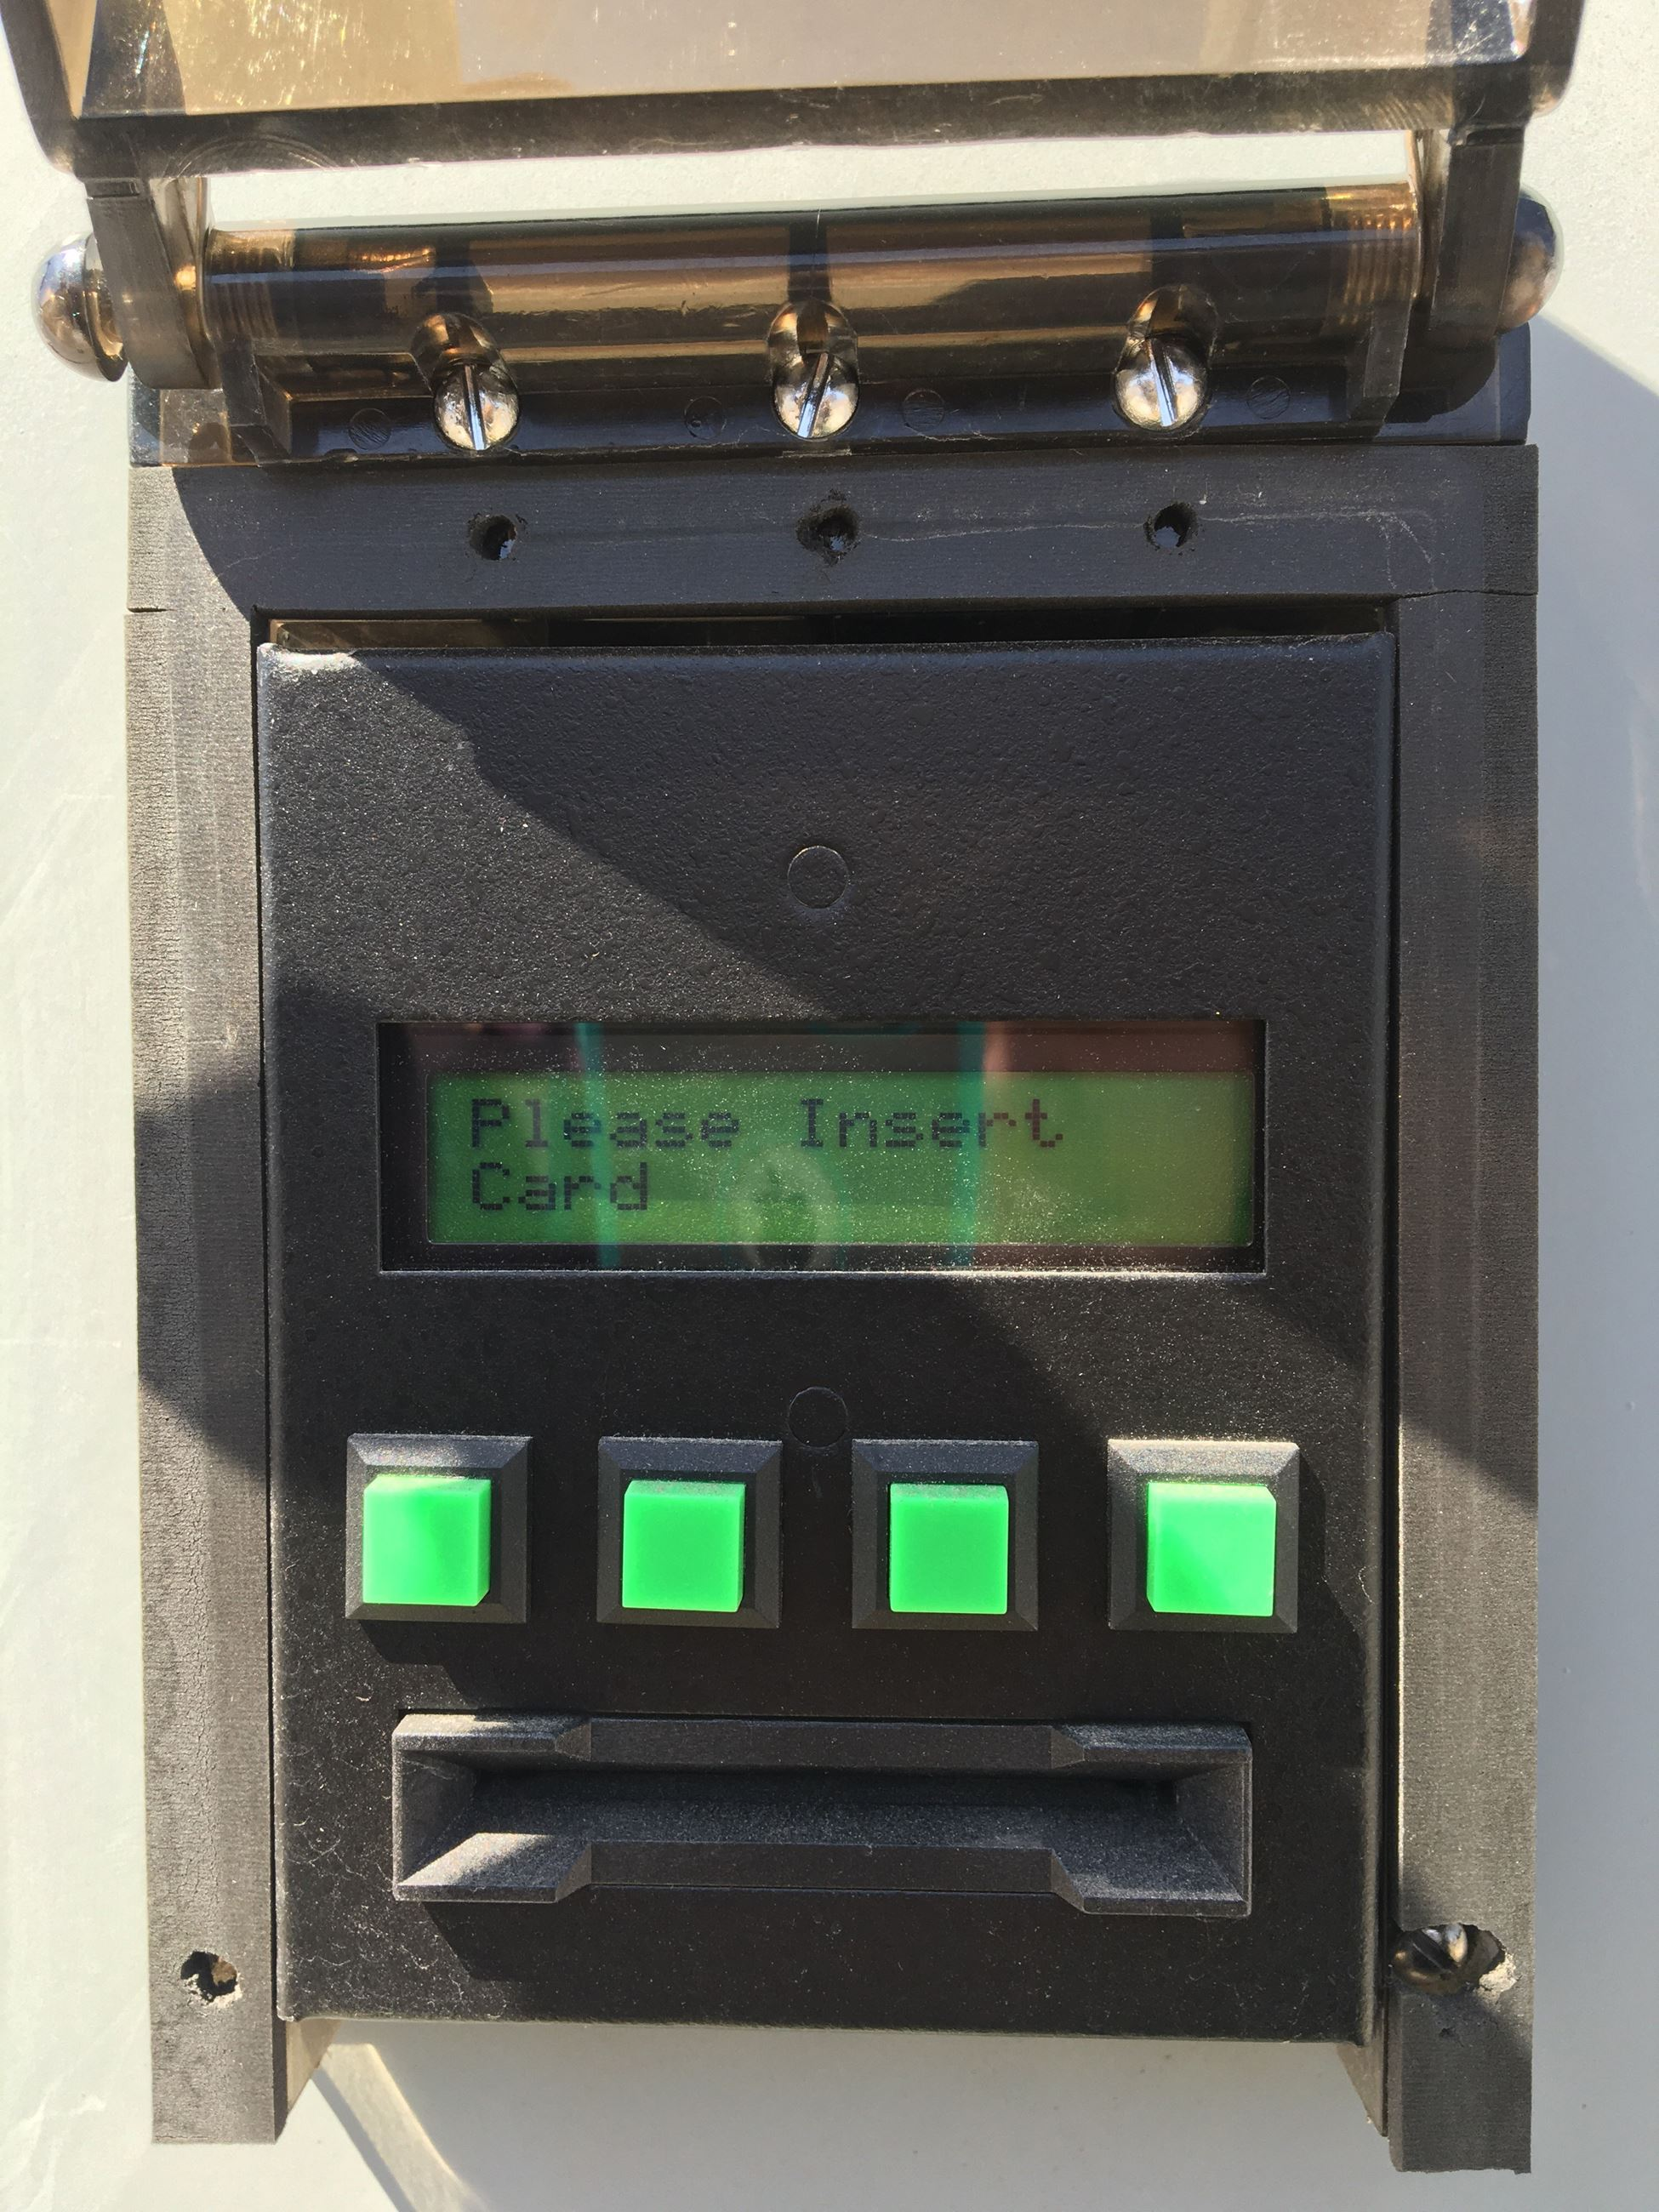 Watersalesman Card Reader Display-Insert Card